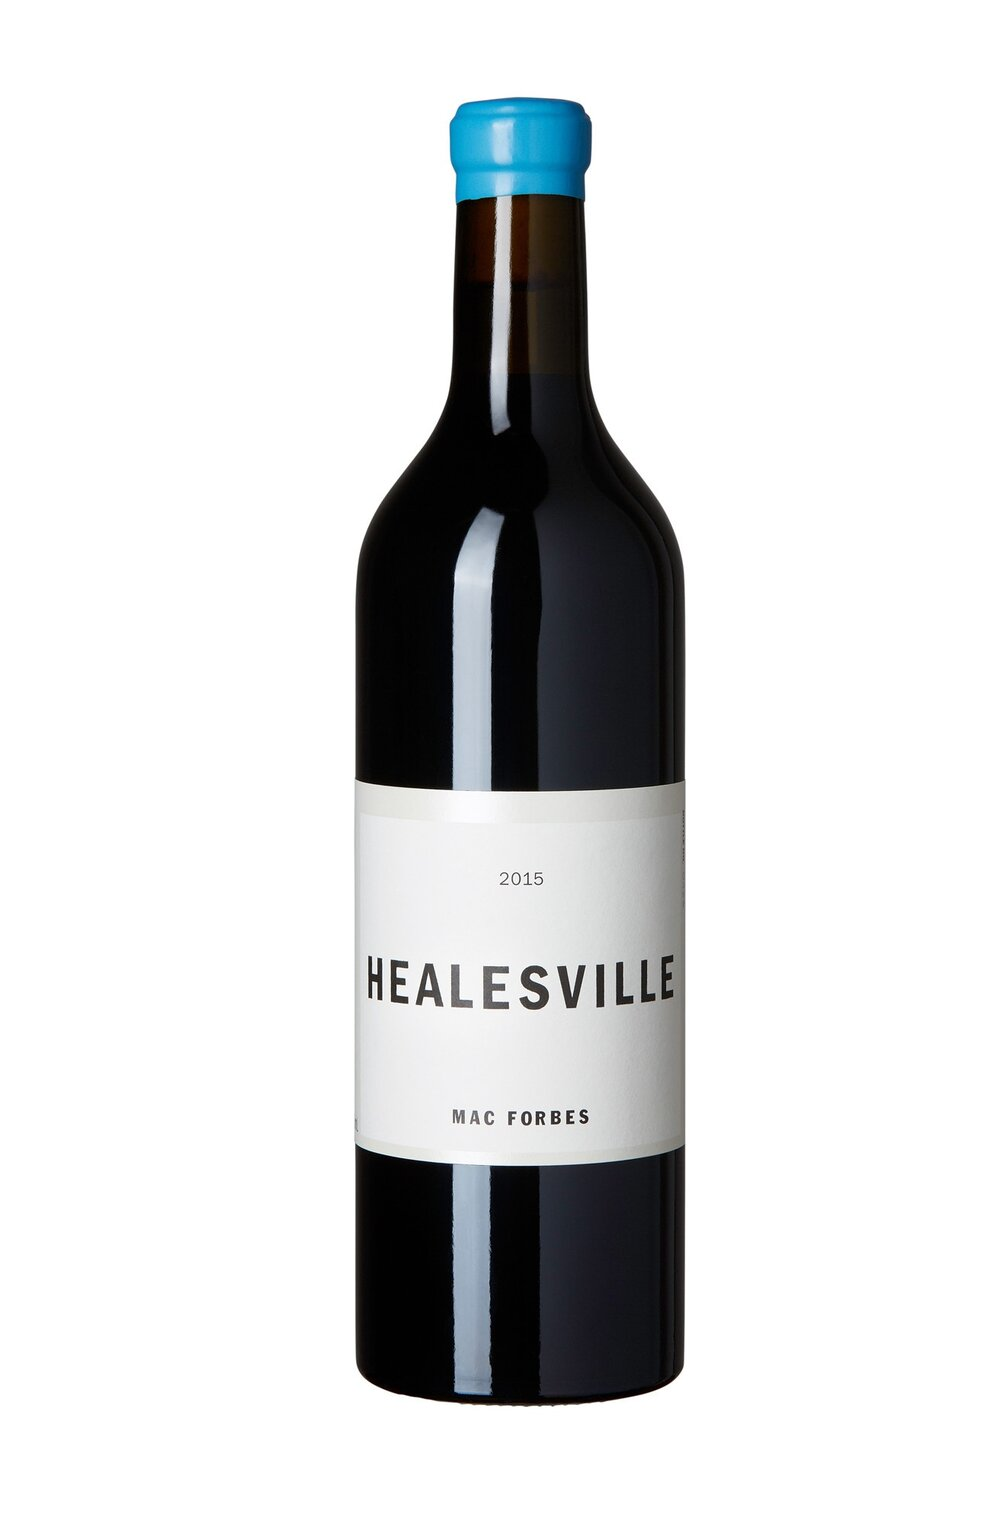 MAC FORBES HEALESVILLE SYRAH| マックフォブス ヒールズヴィル シラー   ヤラヴァレー ヒールズヴィル  ¥ 6,380, 2017, 750ml, 12%,  James Suckling 95 points , オーガニック  Hand Picked, wild ferment, 5% whole bunch. 11 months in old oak.  驚くほど複雑で活気にあふれた、若いヤラヴァレーのシラーズ。とてもスパイシーで肉厚ですが、炭質頁岩からくるノート、赤〜紫色の果物のニュアンスがあります。 それでもなお、軽くて香り高い要素も豊富に感じられます。 口当たりは印象的なアタックで、力強い味わいにサクランボ、ラズベリー、プラムのような生き生きとした香りがあります。 フィニッシュに向け、タンニンはワインを包むように現れてきます。 現代的なサイクルでできる、冷涼気候ヤラヴァレーのシラーズ。 飲み頃は2020年以降でしょう。  A strikingly complex and vibrant young Yarra syrah that has swirling fragrant appeal. It's really spicy and meaty though with black stony notes and red to purple fruits. Even so, lighter, more fragrant elements linger in abundance. The palate has impressive grab, really firing up bold, vibrant flavors in the red cherry, raspberry and plum zone. The tannins wrap like a glove around the finish. Brilliant, modern iteration of cooler-climate Yarra syrah. Best drinking from 2020.